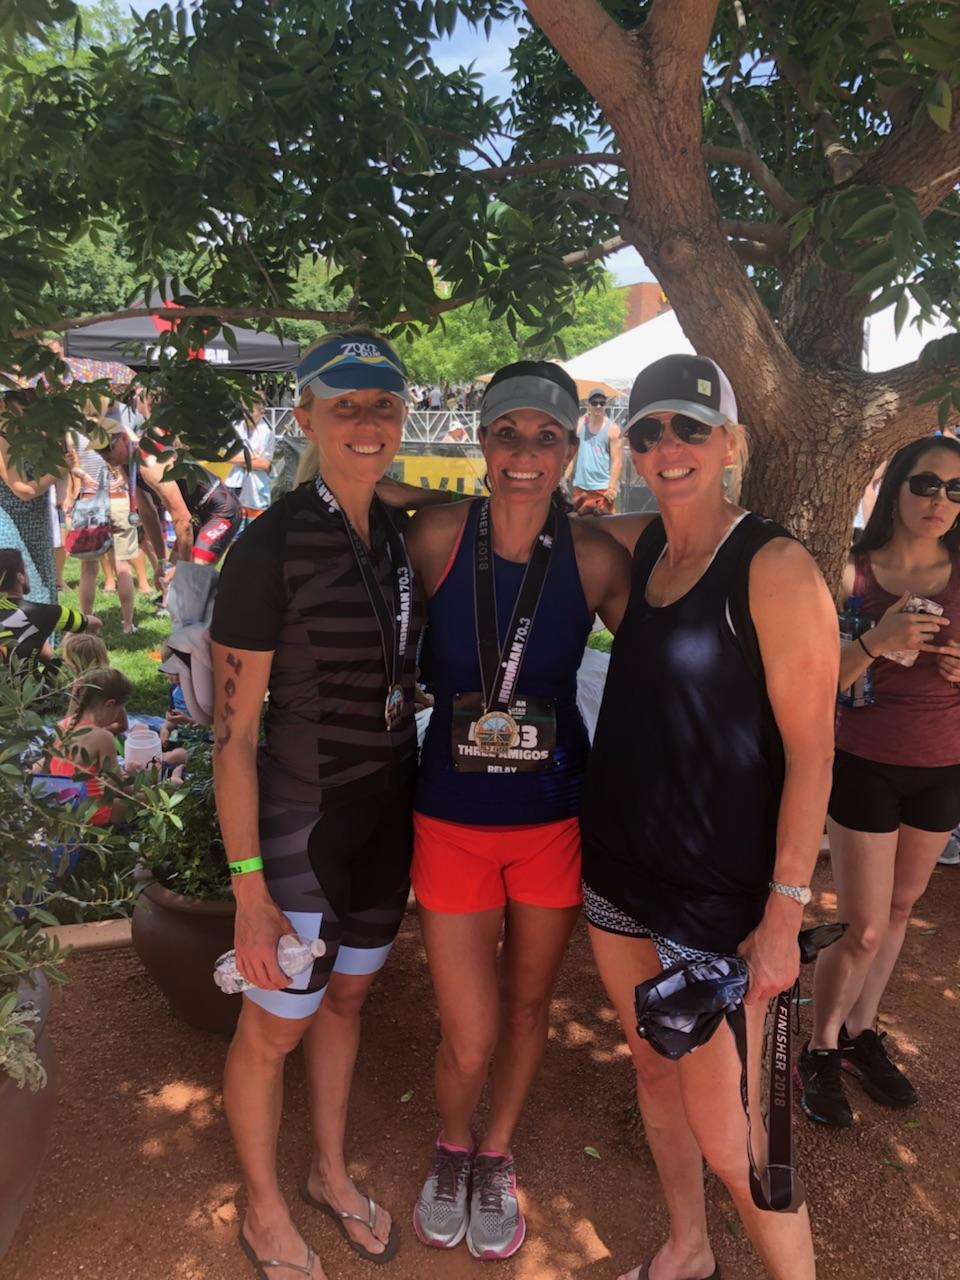 Super proud of Kristin, Emily & Brooke who finished the IronMan (IronWoman!) relay!